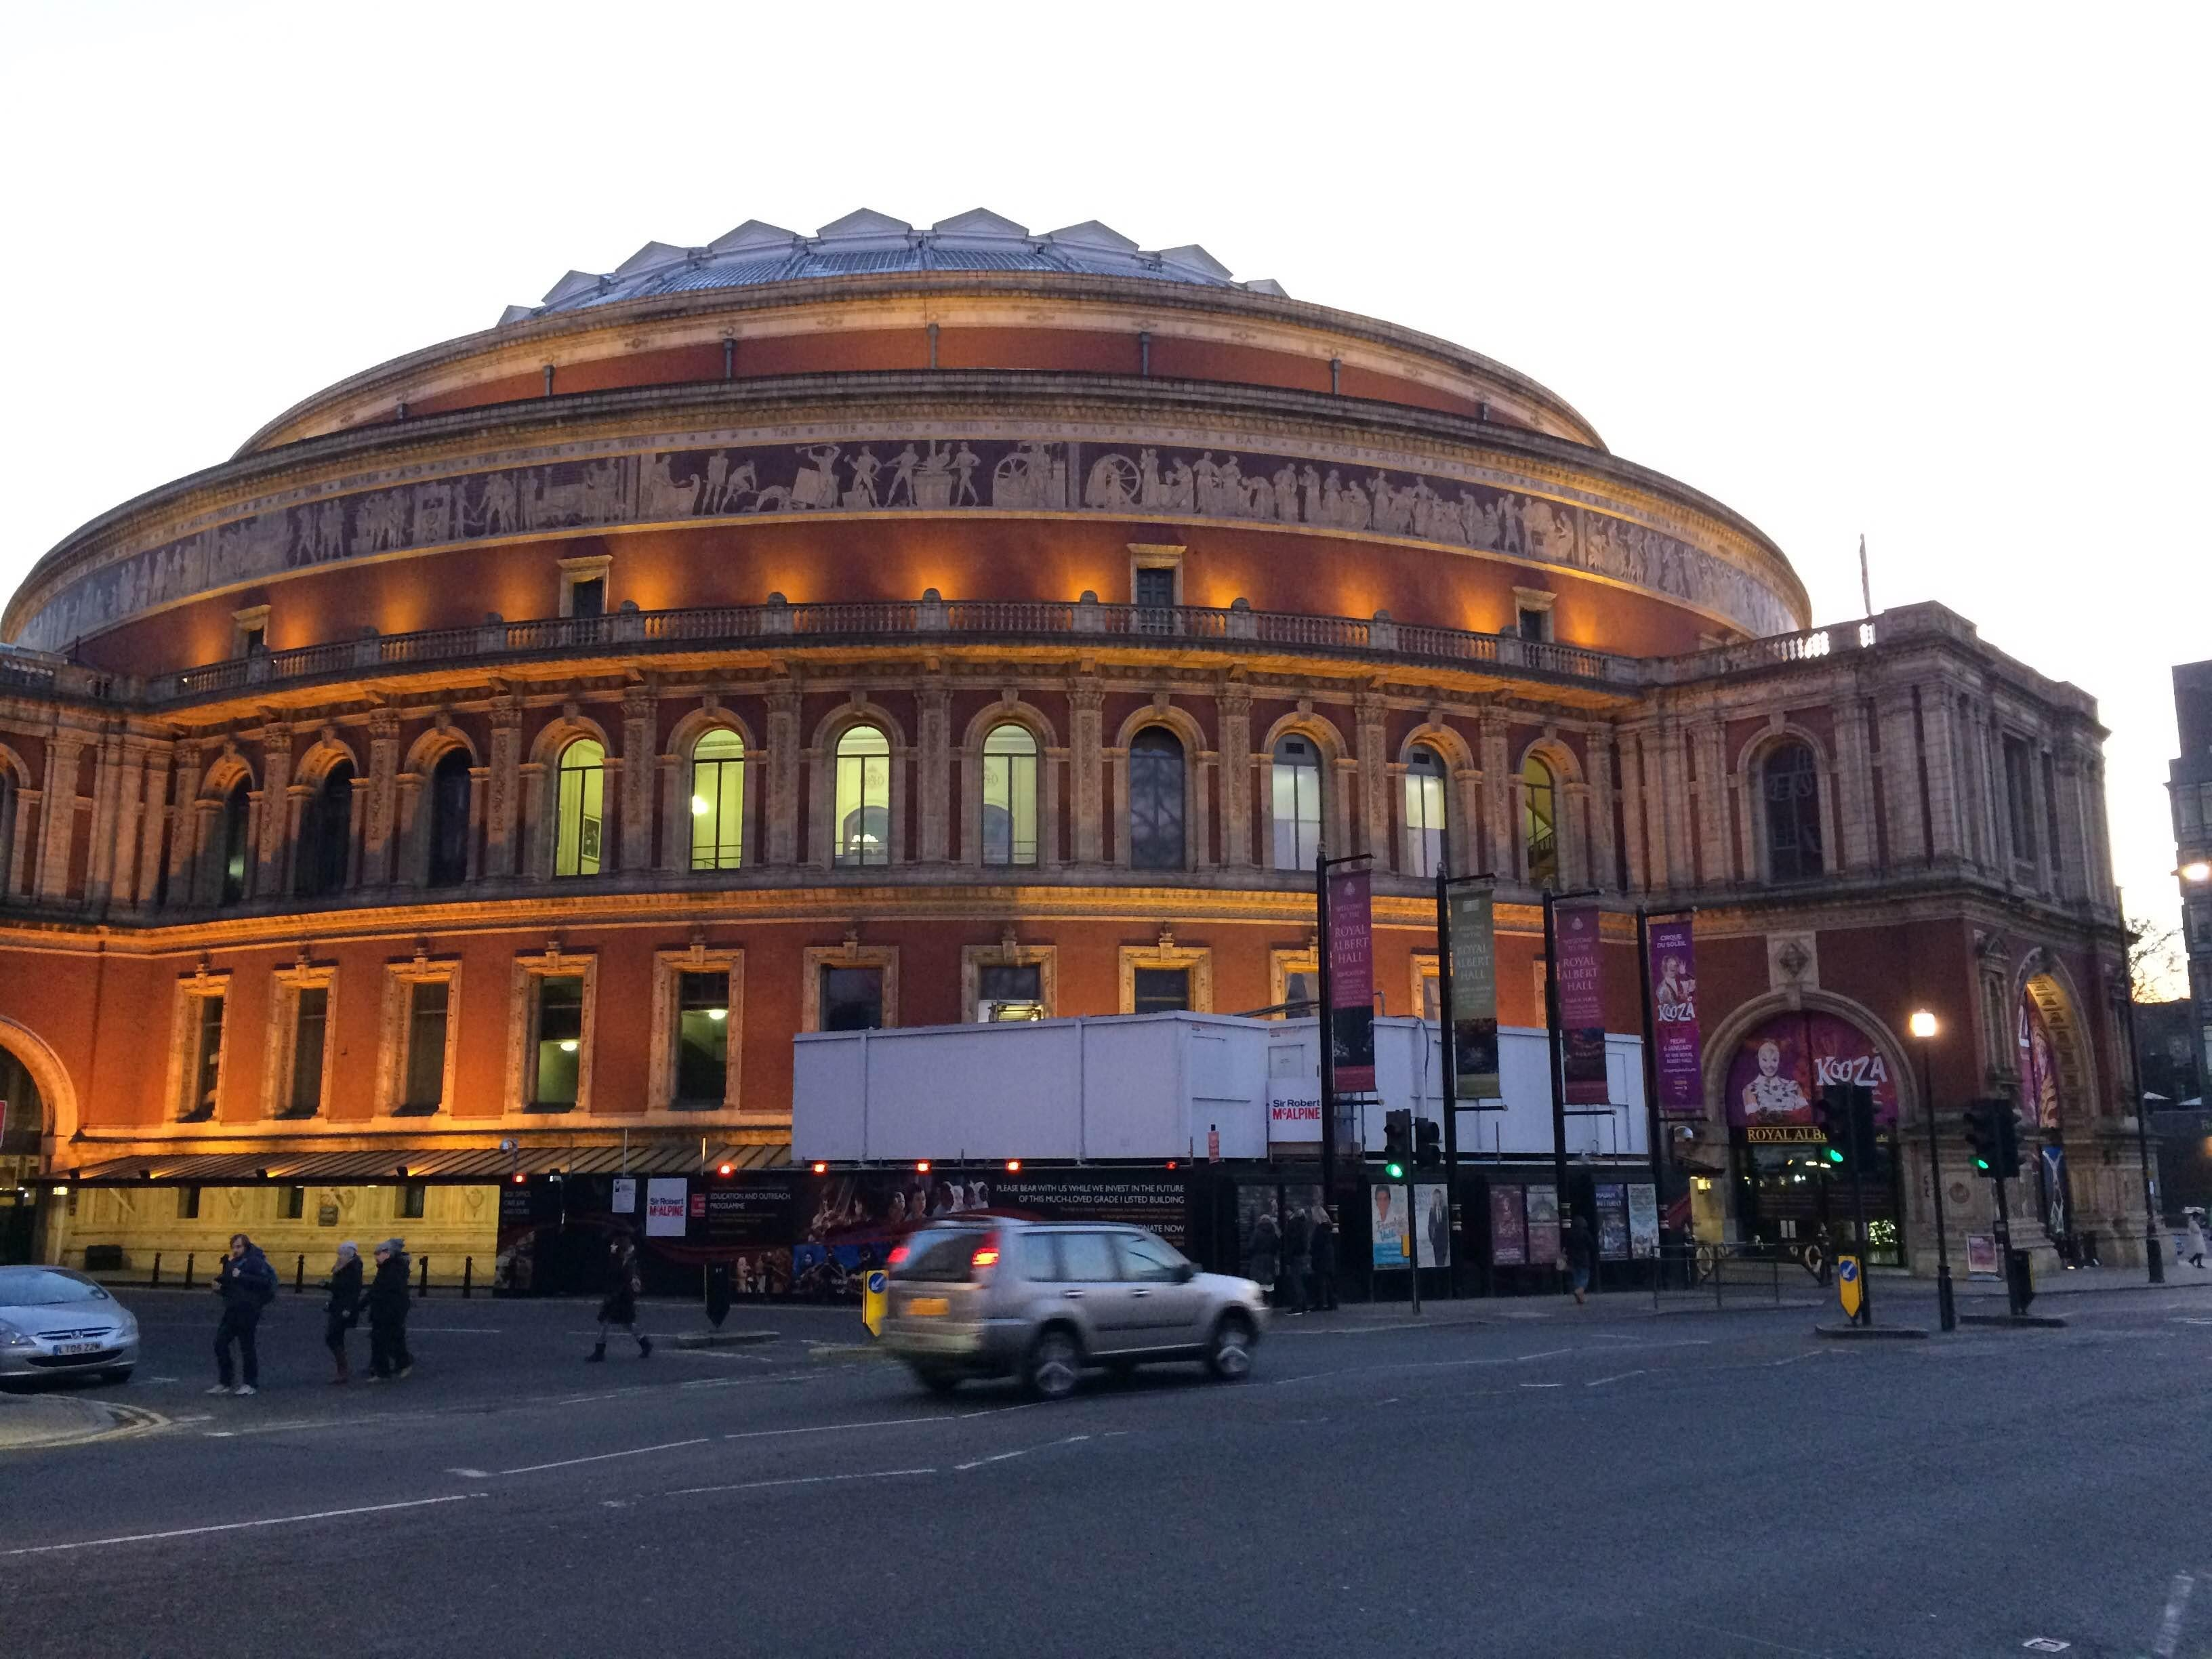 Arte en Royal Albert Hall